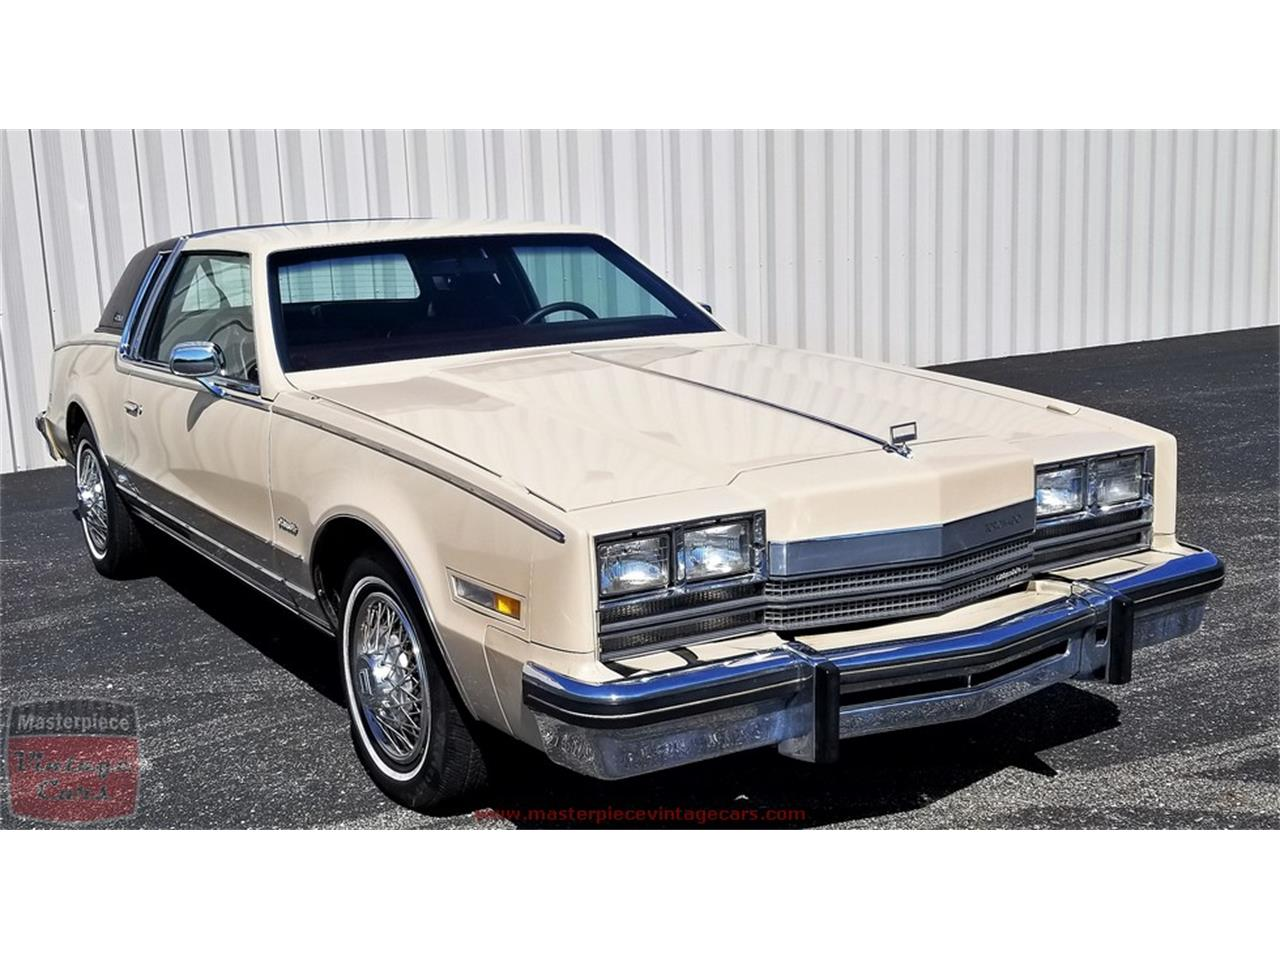 Large Picture of '85 Toronado located in Indiana Offered by Masterpiece Vintage Cars - Q4ZA